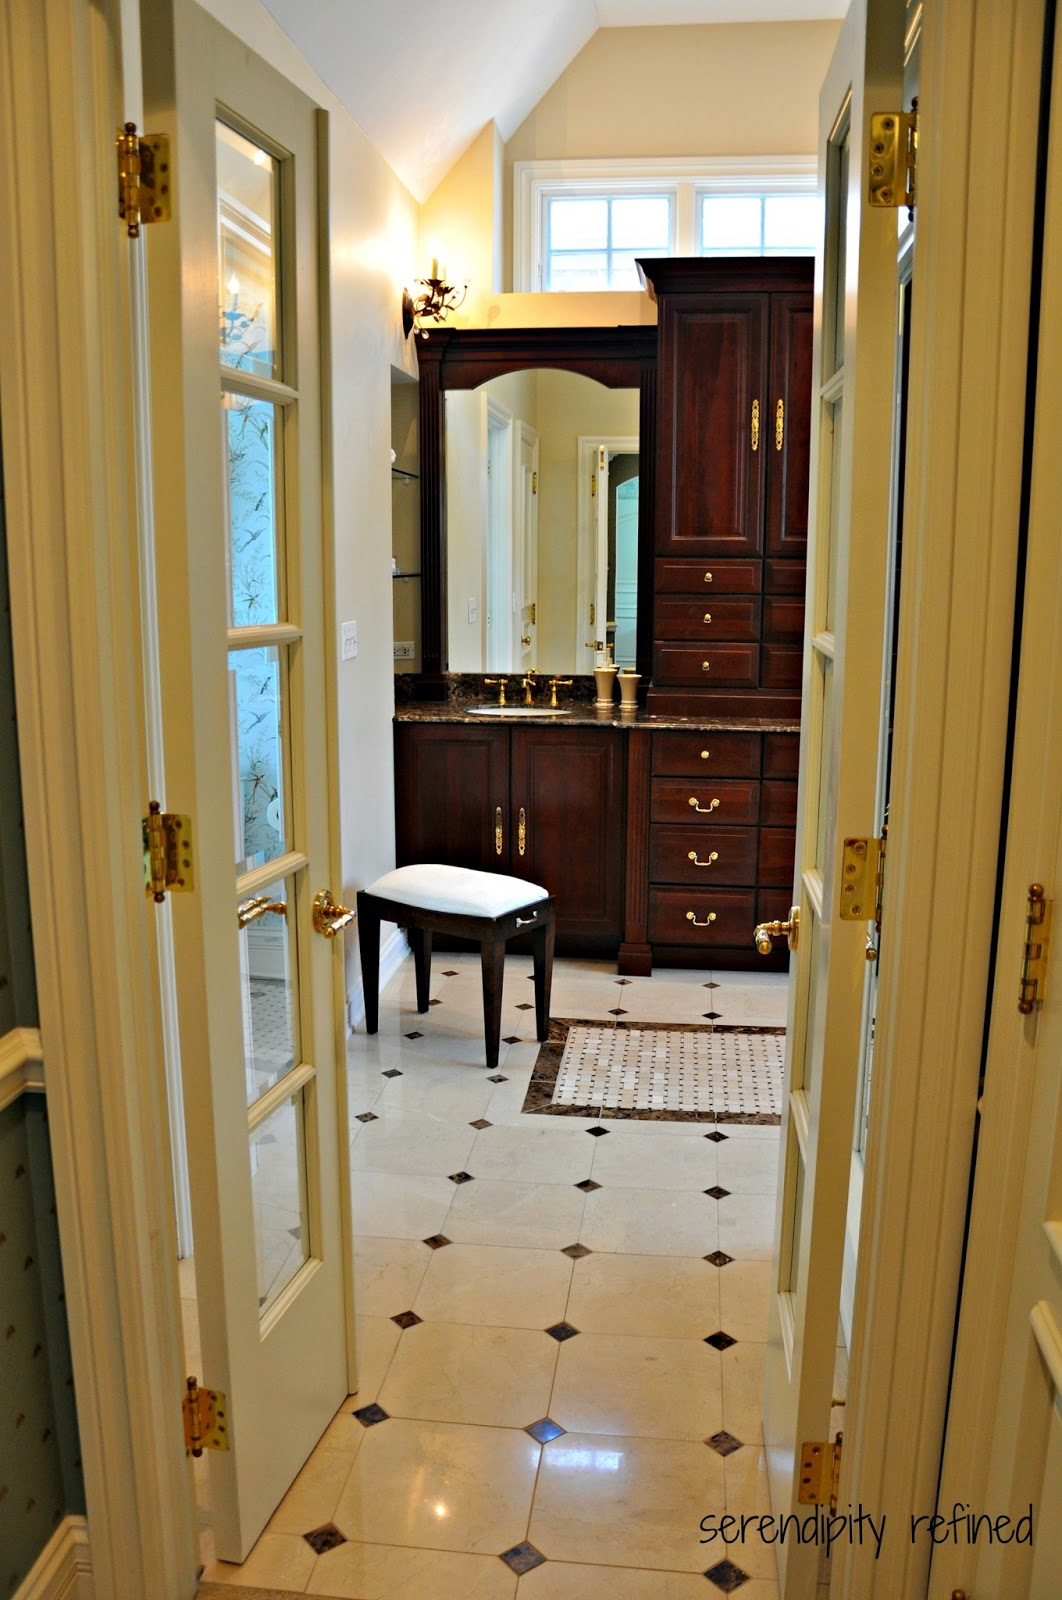 Serendipity refined blog master bathroom reveal for Master bathroom glass doors